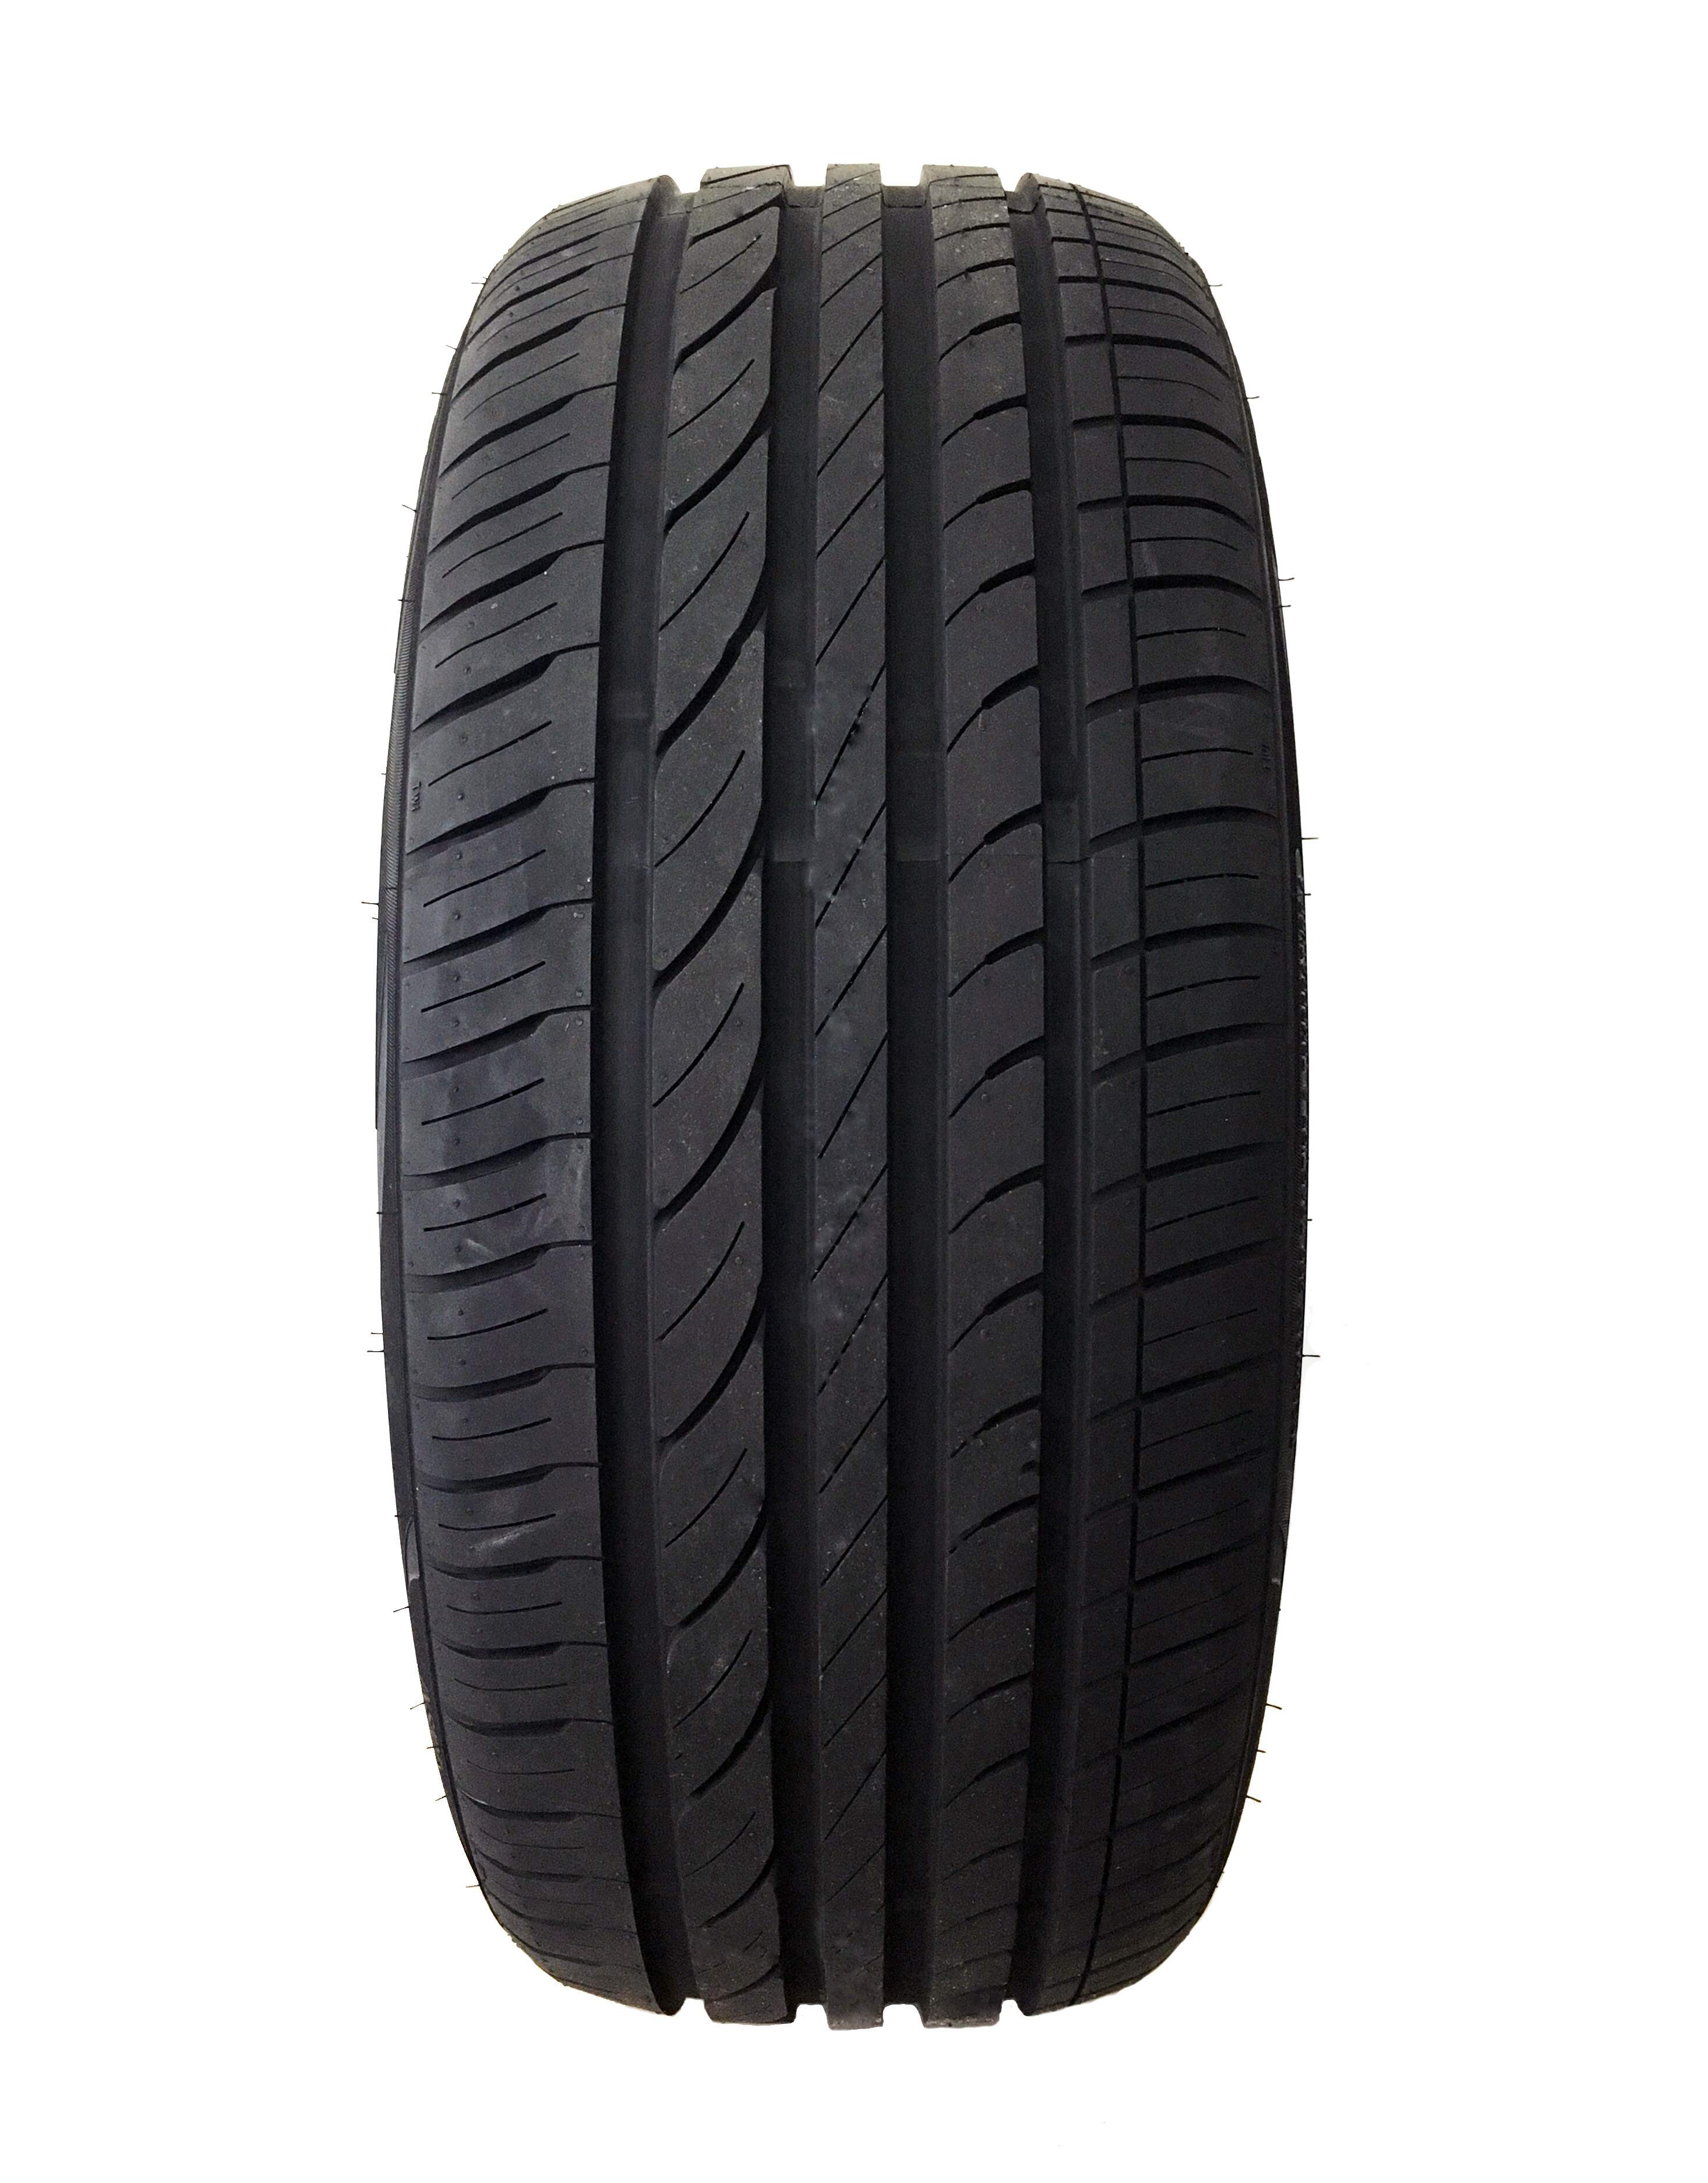 PNEU 235/40 R18 95W GREEN-MAX EXTRA LOAD LINGLONG